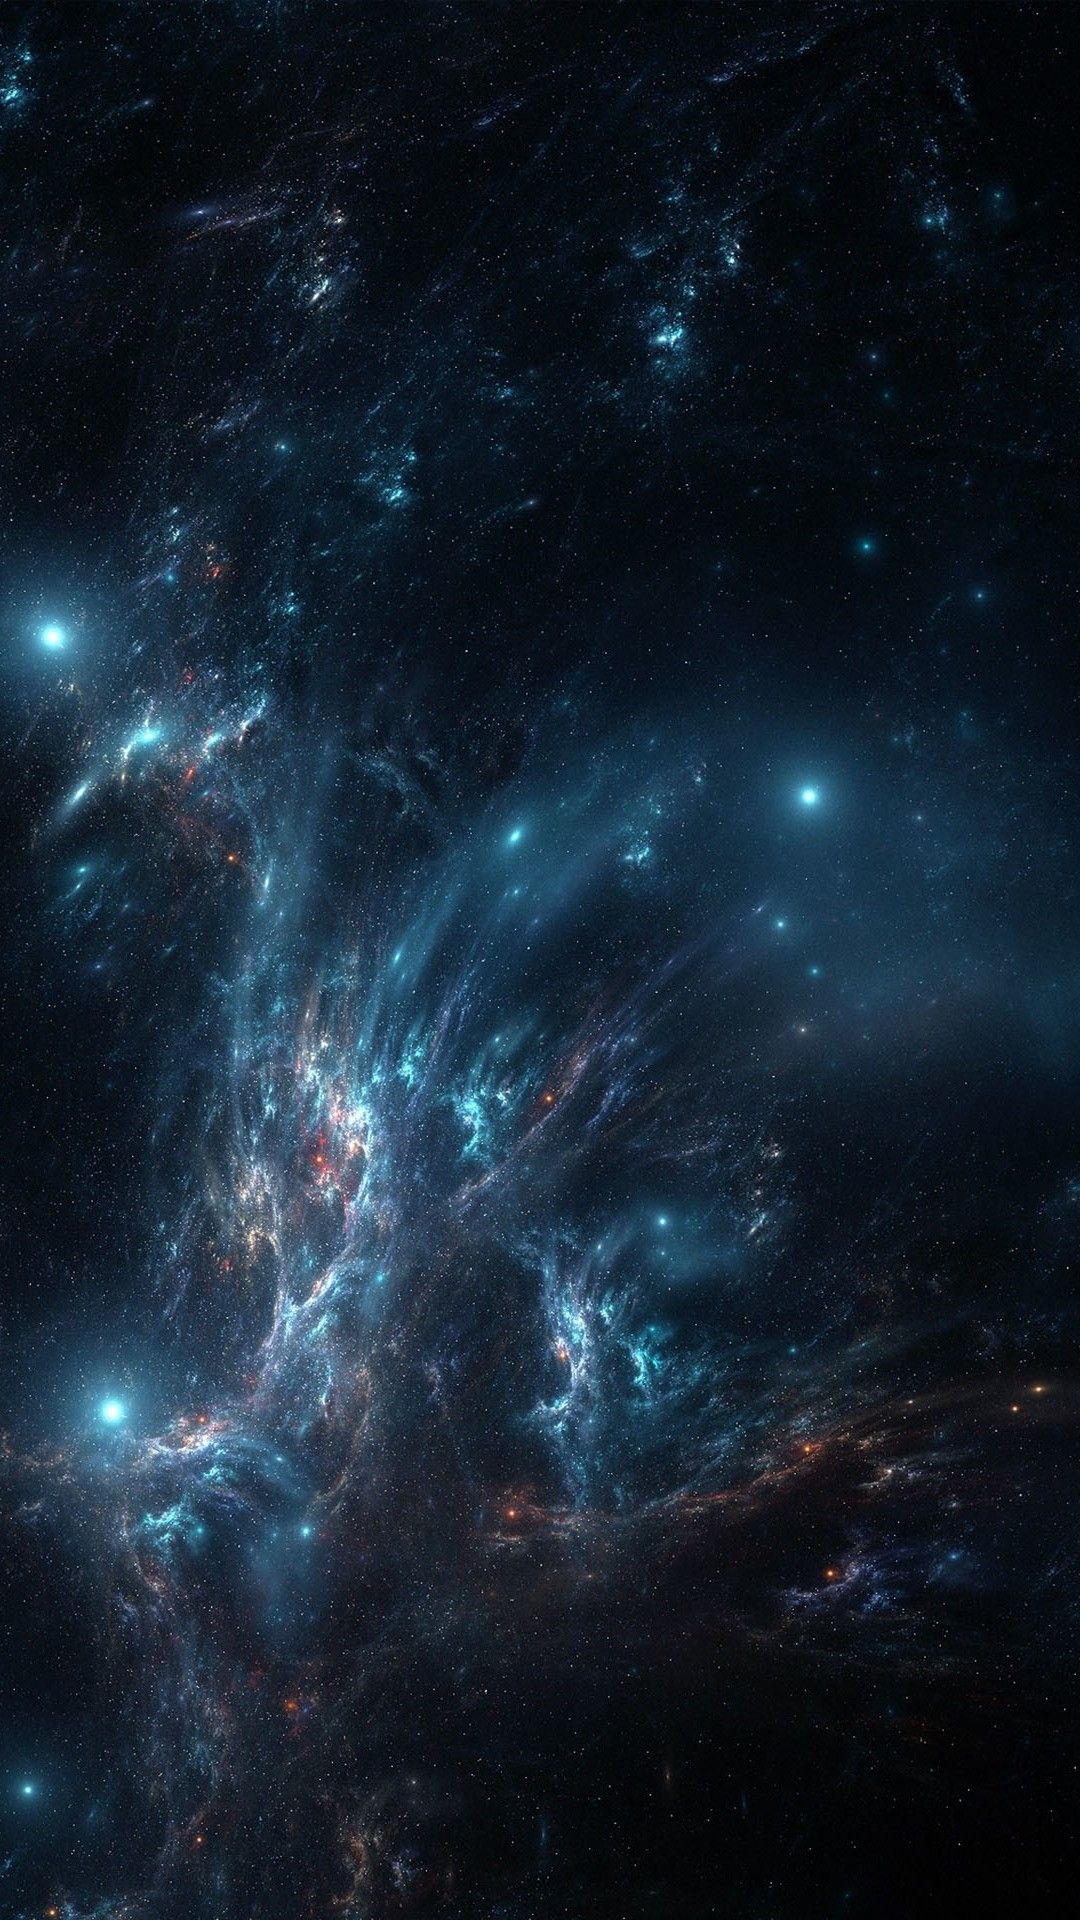 Galaxy Wallpaper Iphone 7 Plus Iphonewallpapers Galaxy Wallpaper